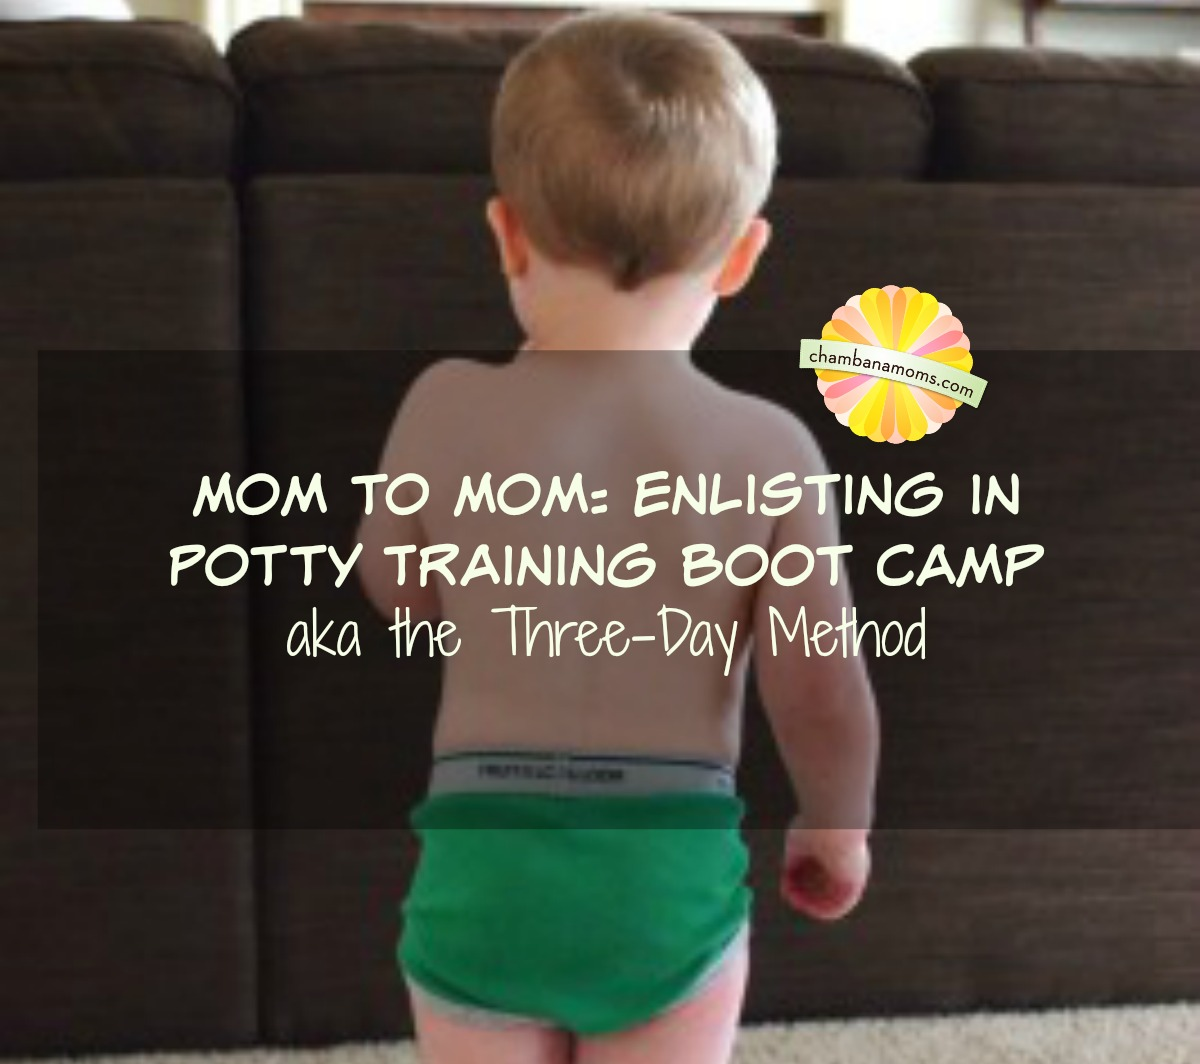 Potty training boot camp for toddlers 2014